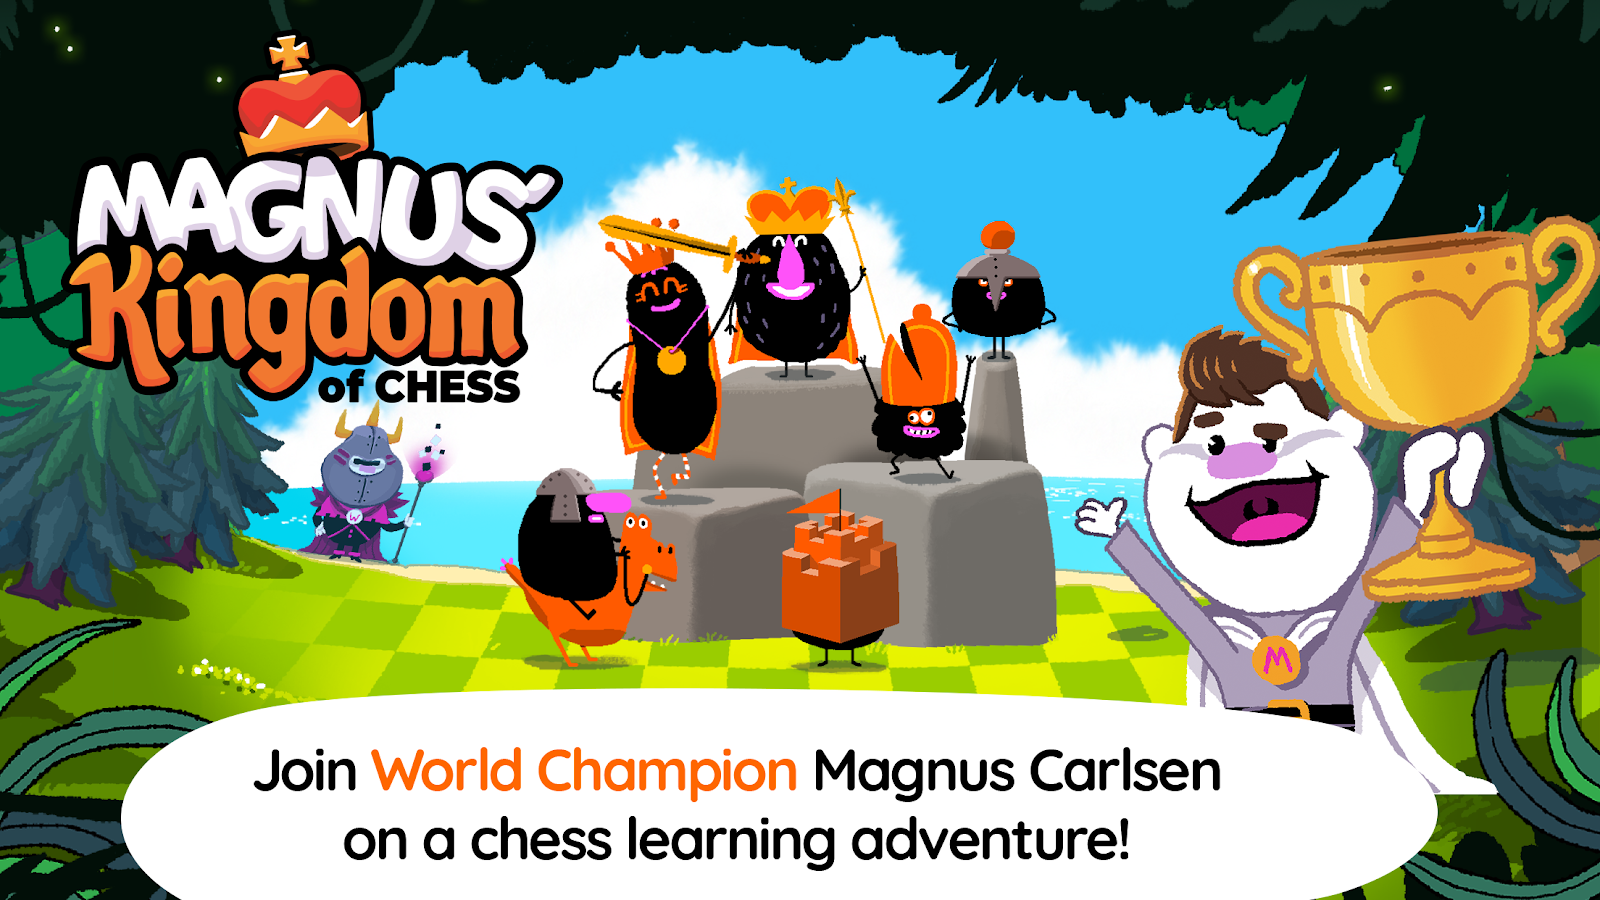 Magnus Kingdom Of Chess 130 Apk Download Android Educational Games Move Checkmate Diagram Furthermore Moves In Addition The Event Screenshot 1